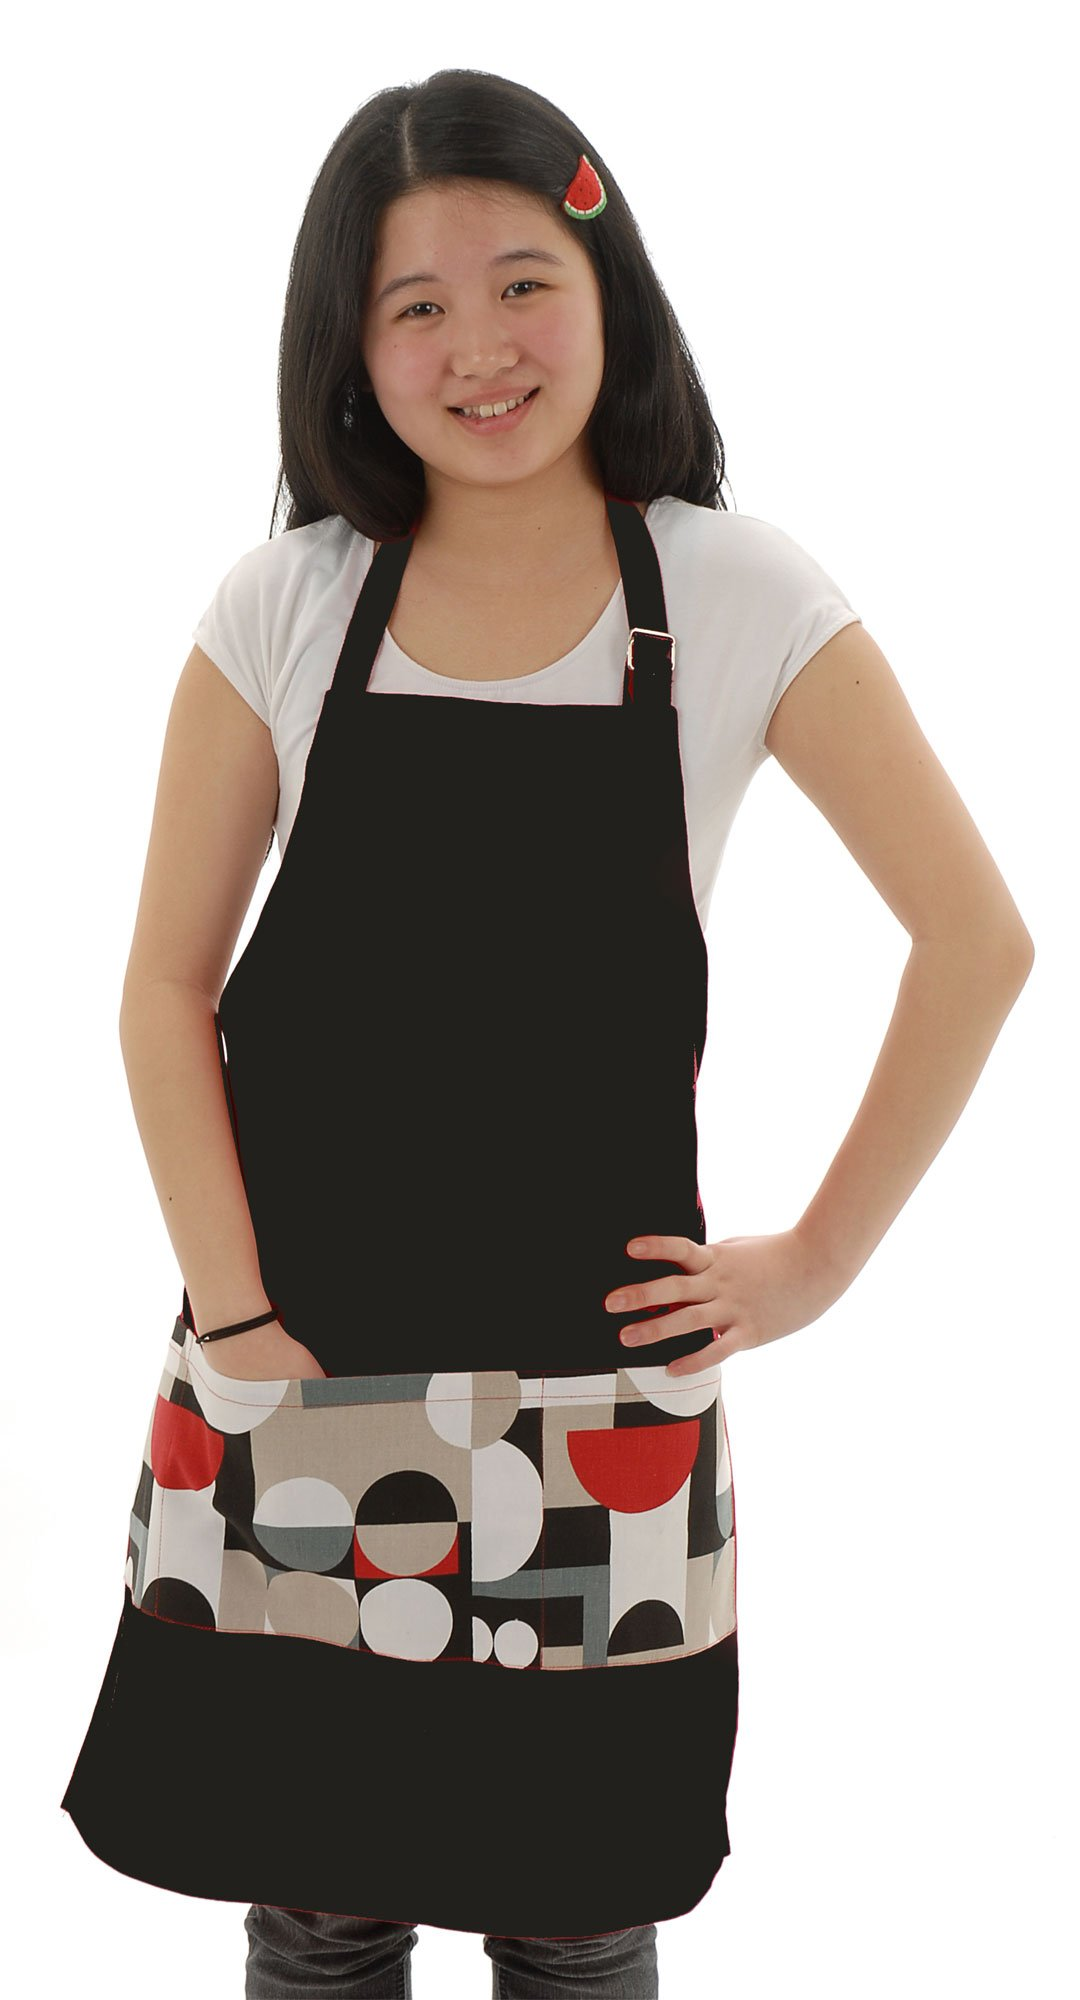 Twinklebelle Adult Cotton Pocket Apron for Cooking, Gardening, Crafting (Funky dots on Black) by Twinklebelle (Image #1)